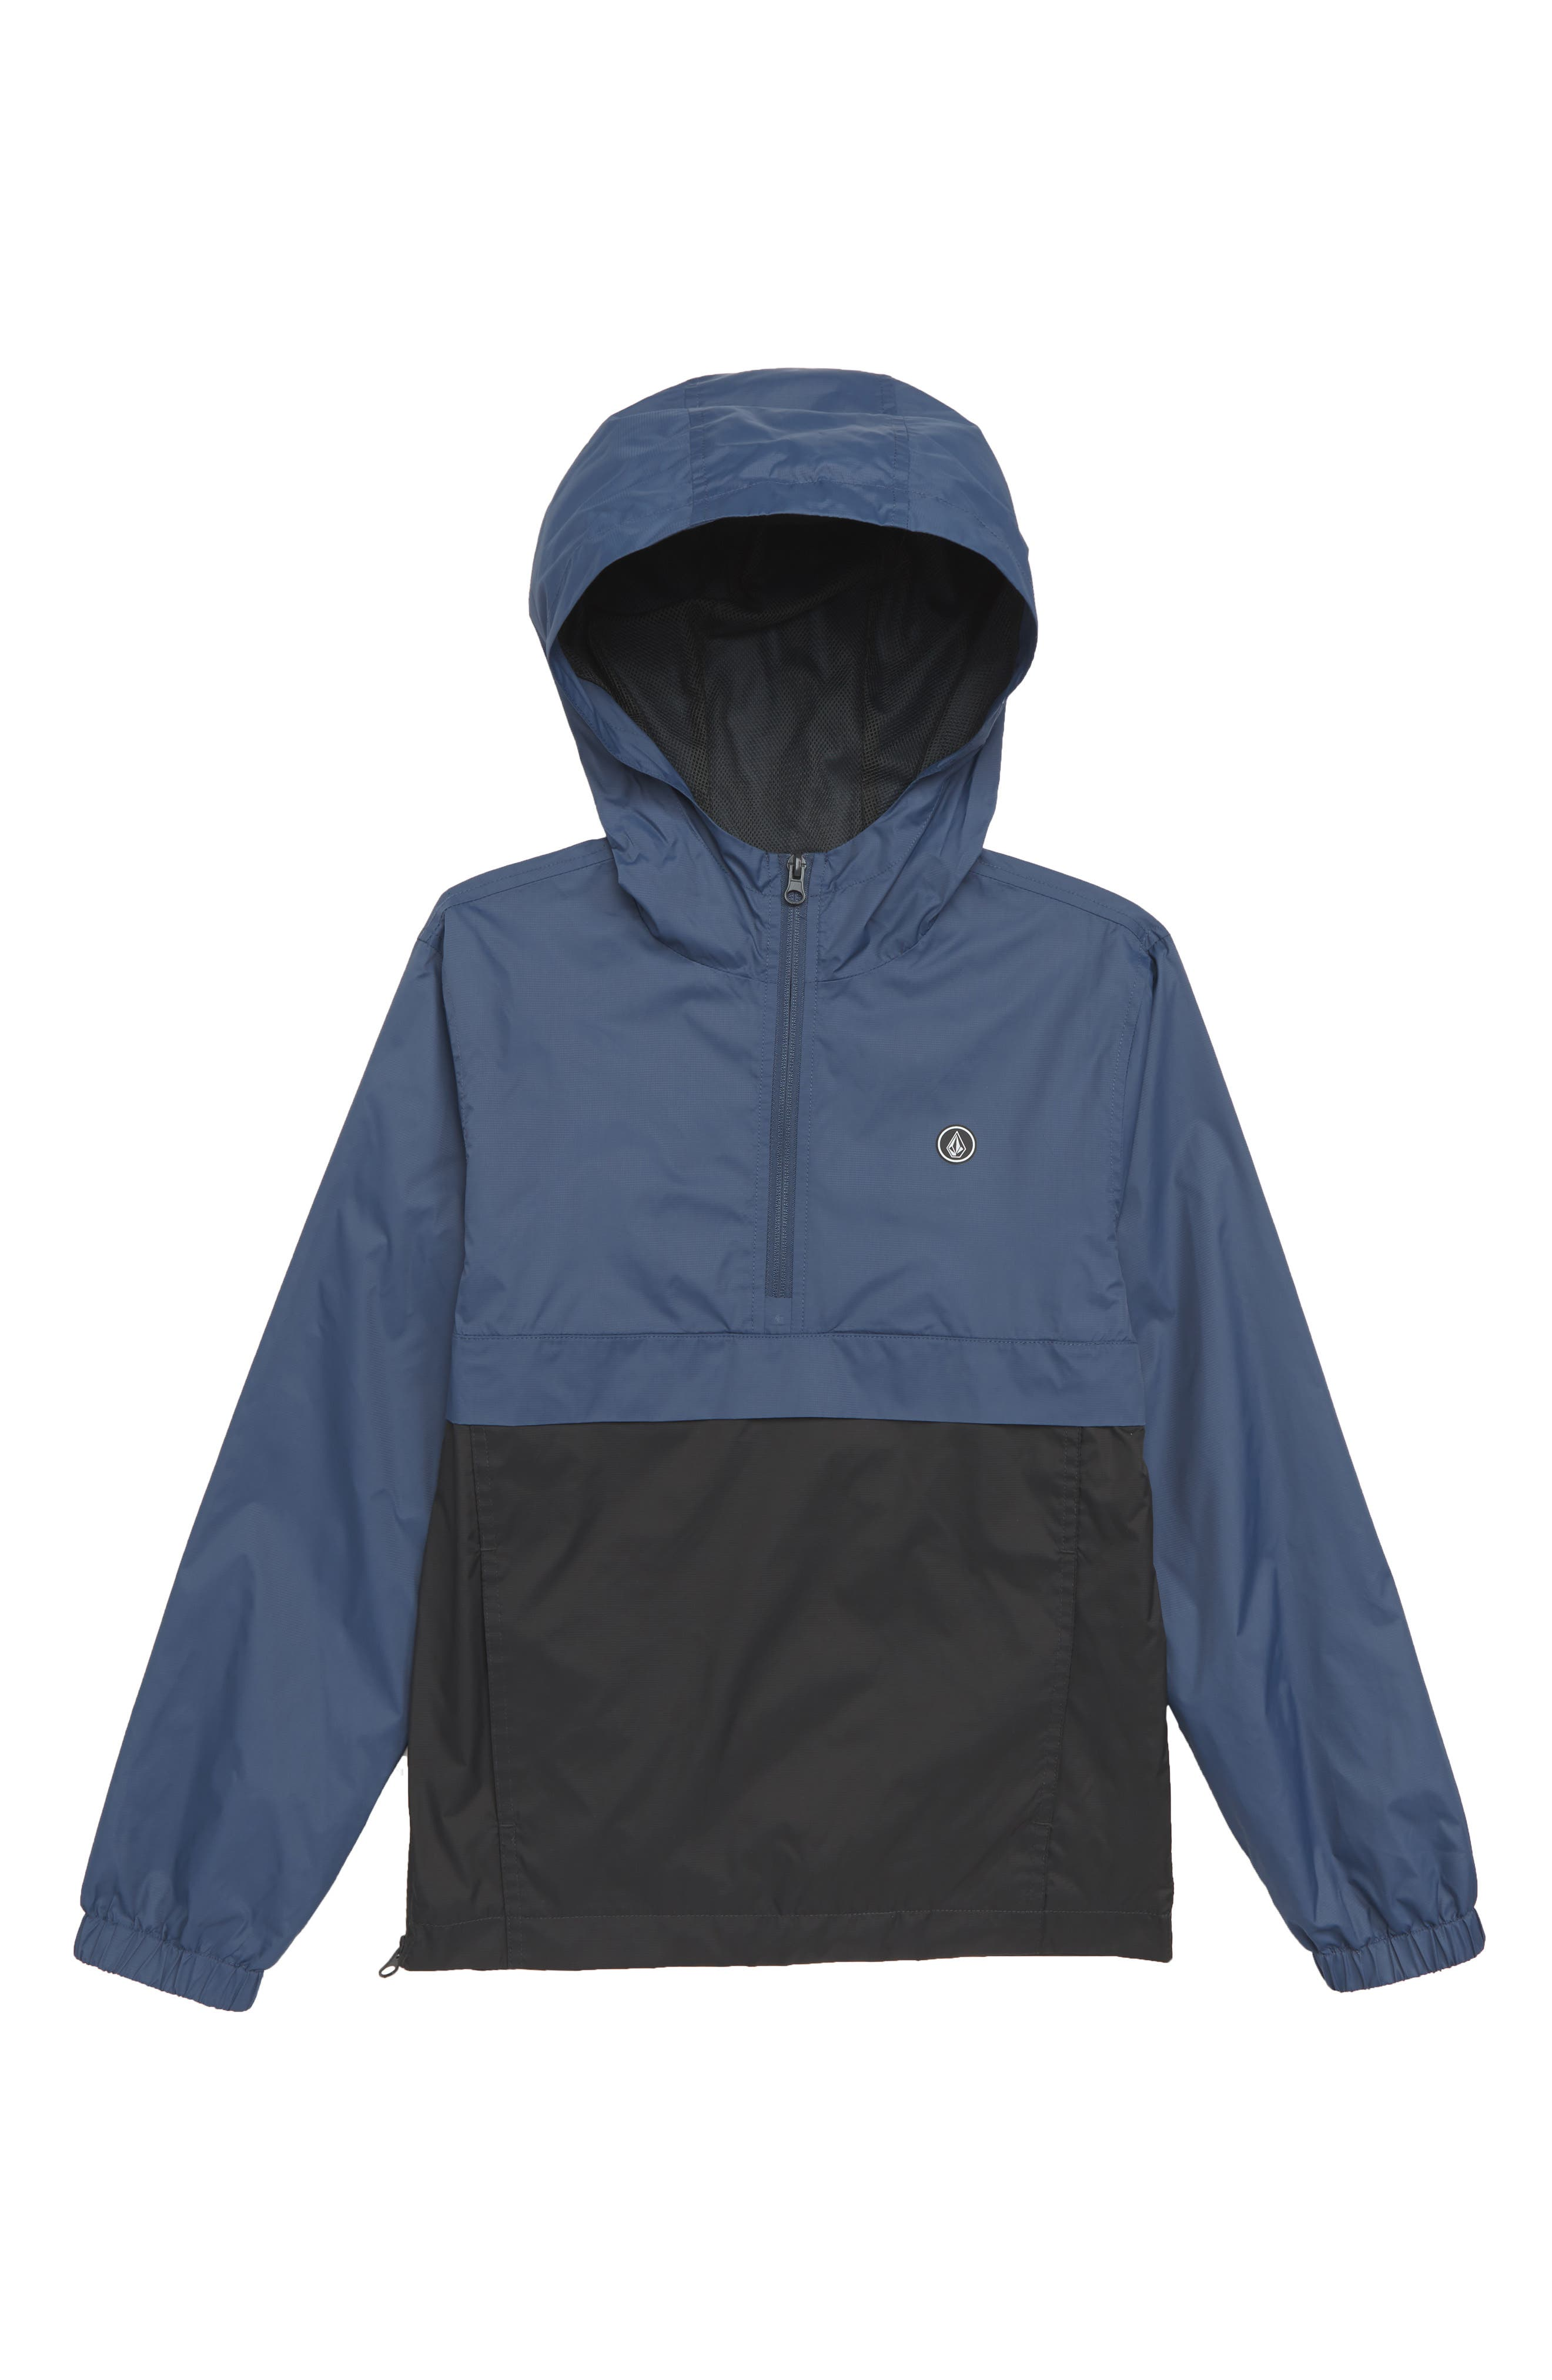 Halfmont Hooded Pullover,                             Main thumbnail 1, color,                             DEEP BLUE